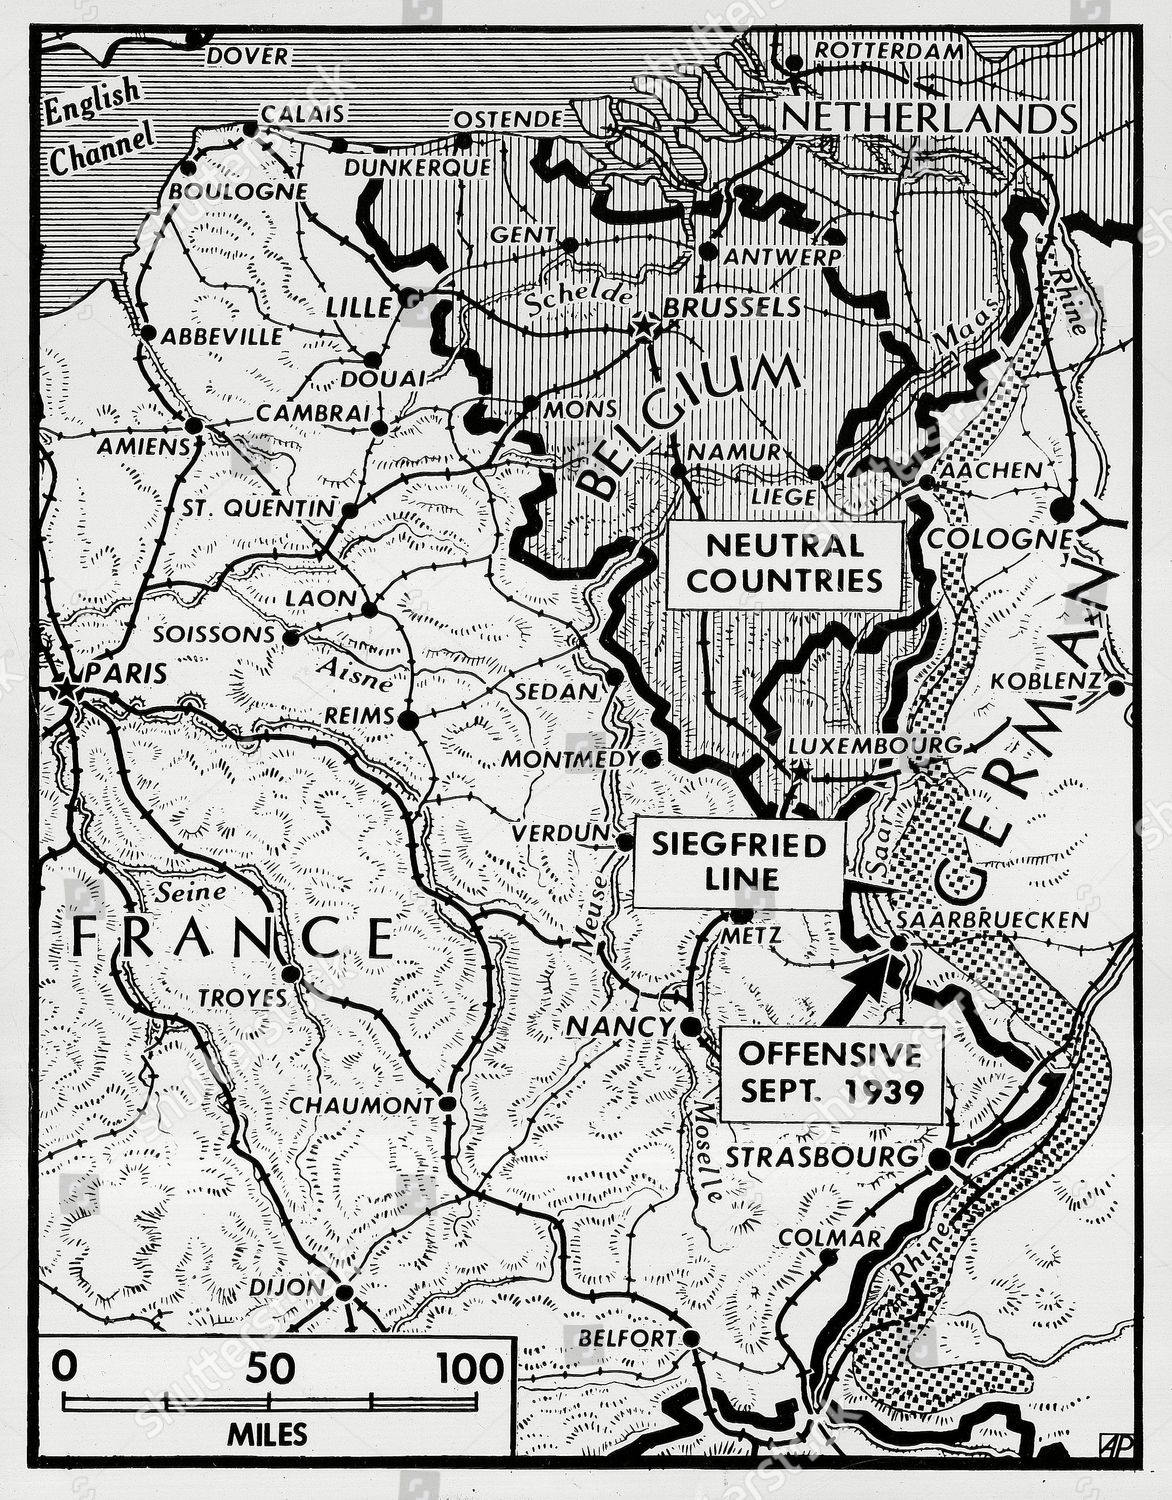 This map shows military situation outbreak World Editorial ... Maginot Line Map on stalingrad map, alpine line, soviet deep battle map, battle of leyte gulf map, germany map, siegfried line, battle of the somme map, siegfried line map, french indochina map, metaxas line, the rose line map, alpine wall, panzer map, sudetenland map, ouvrage schoenenbourg, czechoslovak border fortifications, 100th meridian map, treaty of tordesillas line of demarcation map, mannerheim line map, normandy map, ardennes map, dunkirk map, tokyo jr yamanote line map, battle of dien bien phu map, manchuria map, first battle of the marne map, atlantic wall,